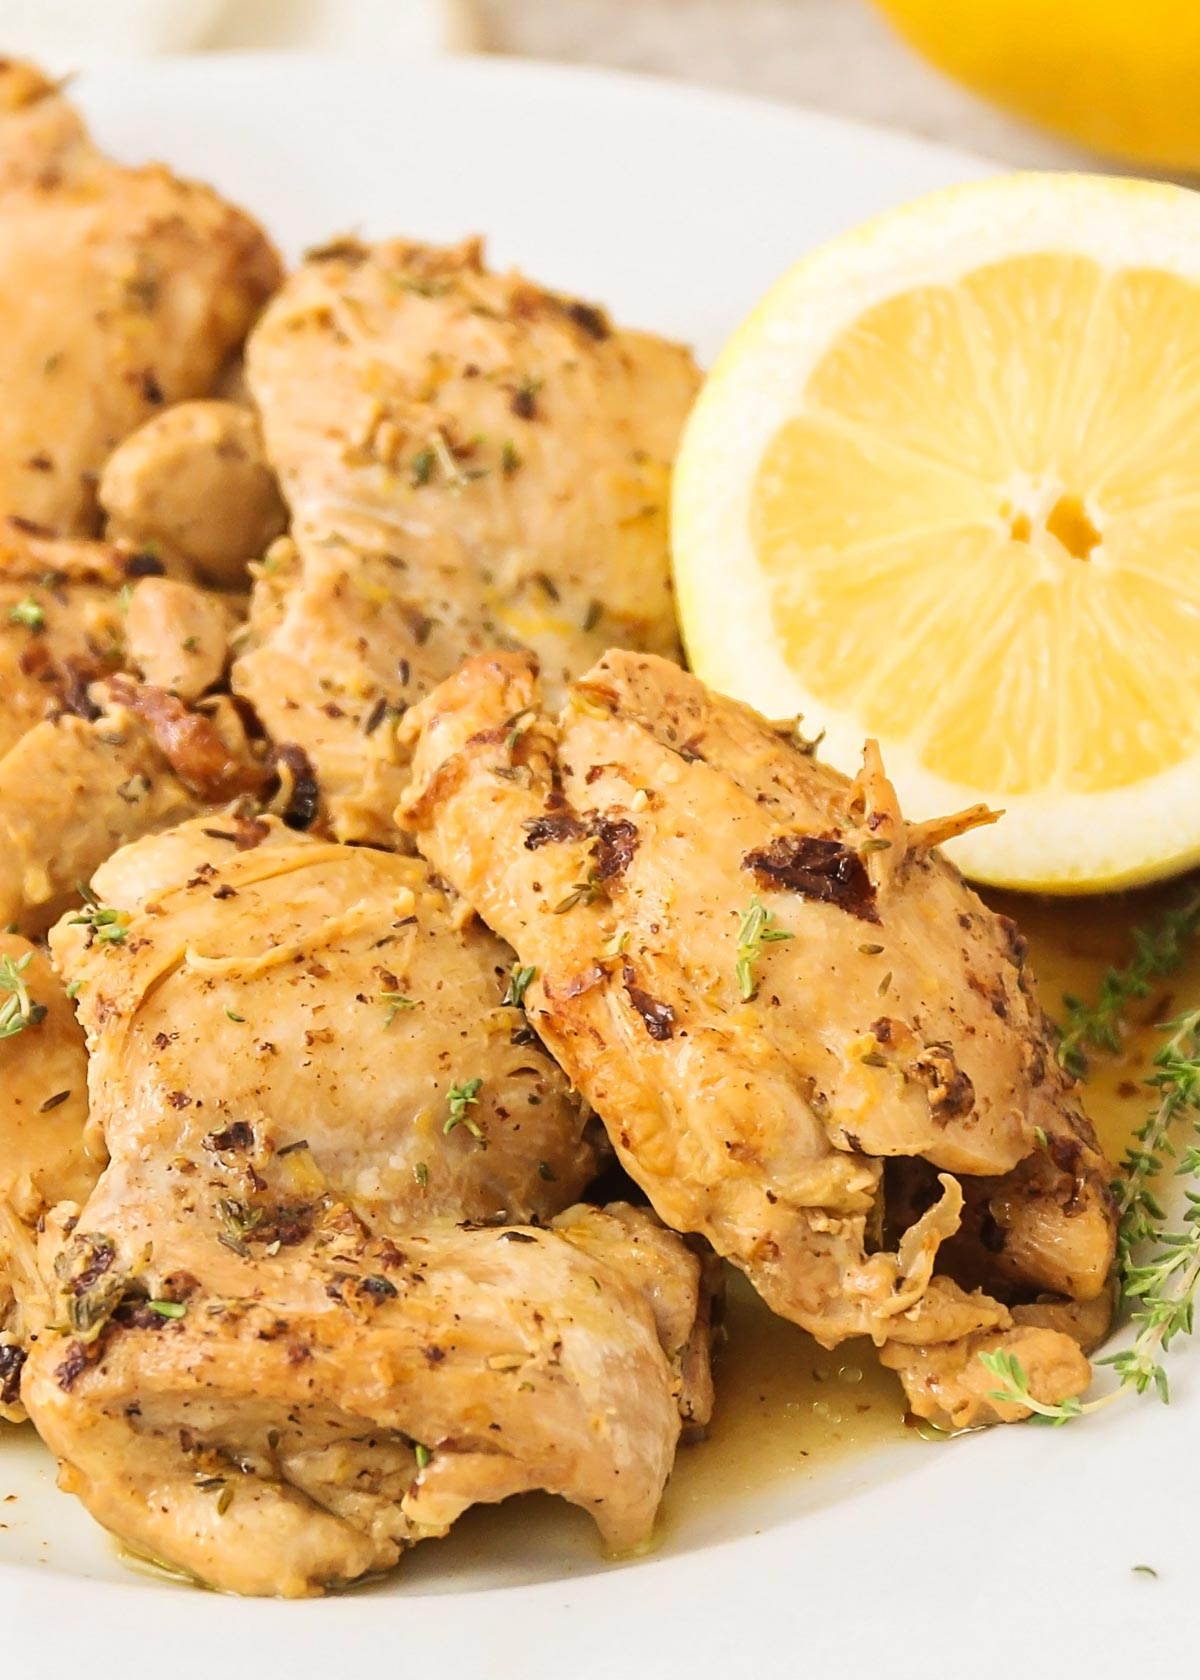 Lemon and thyme instant pot chicken thighs